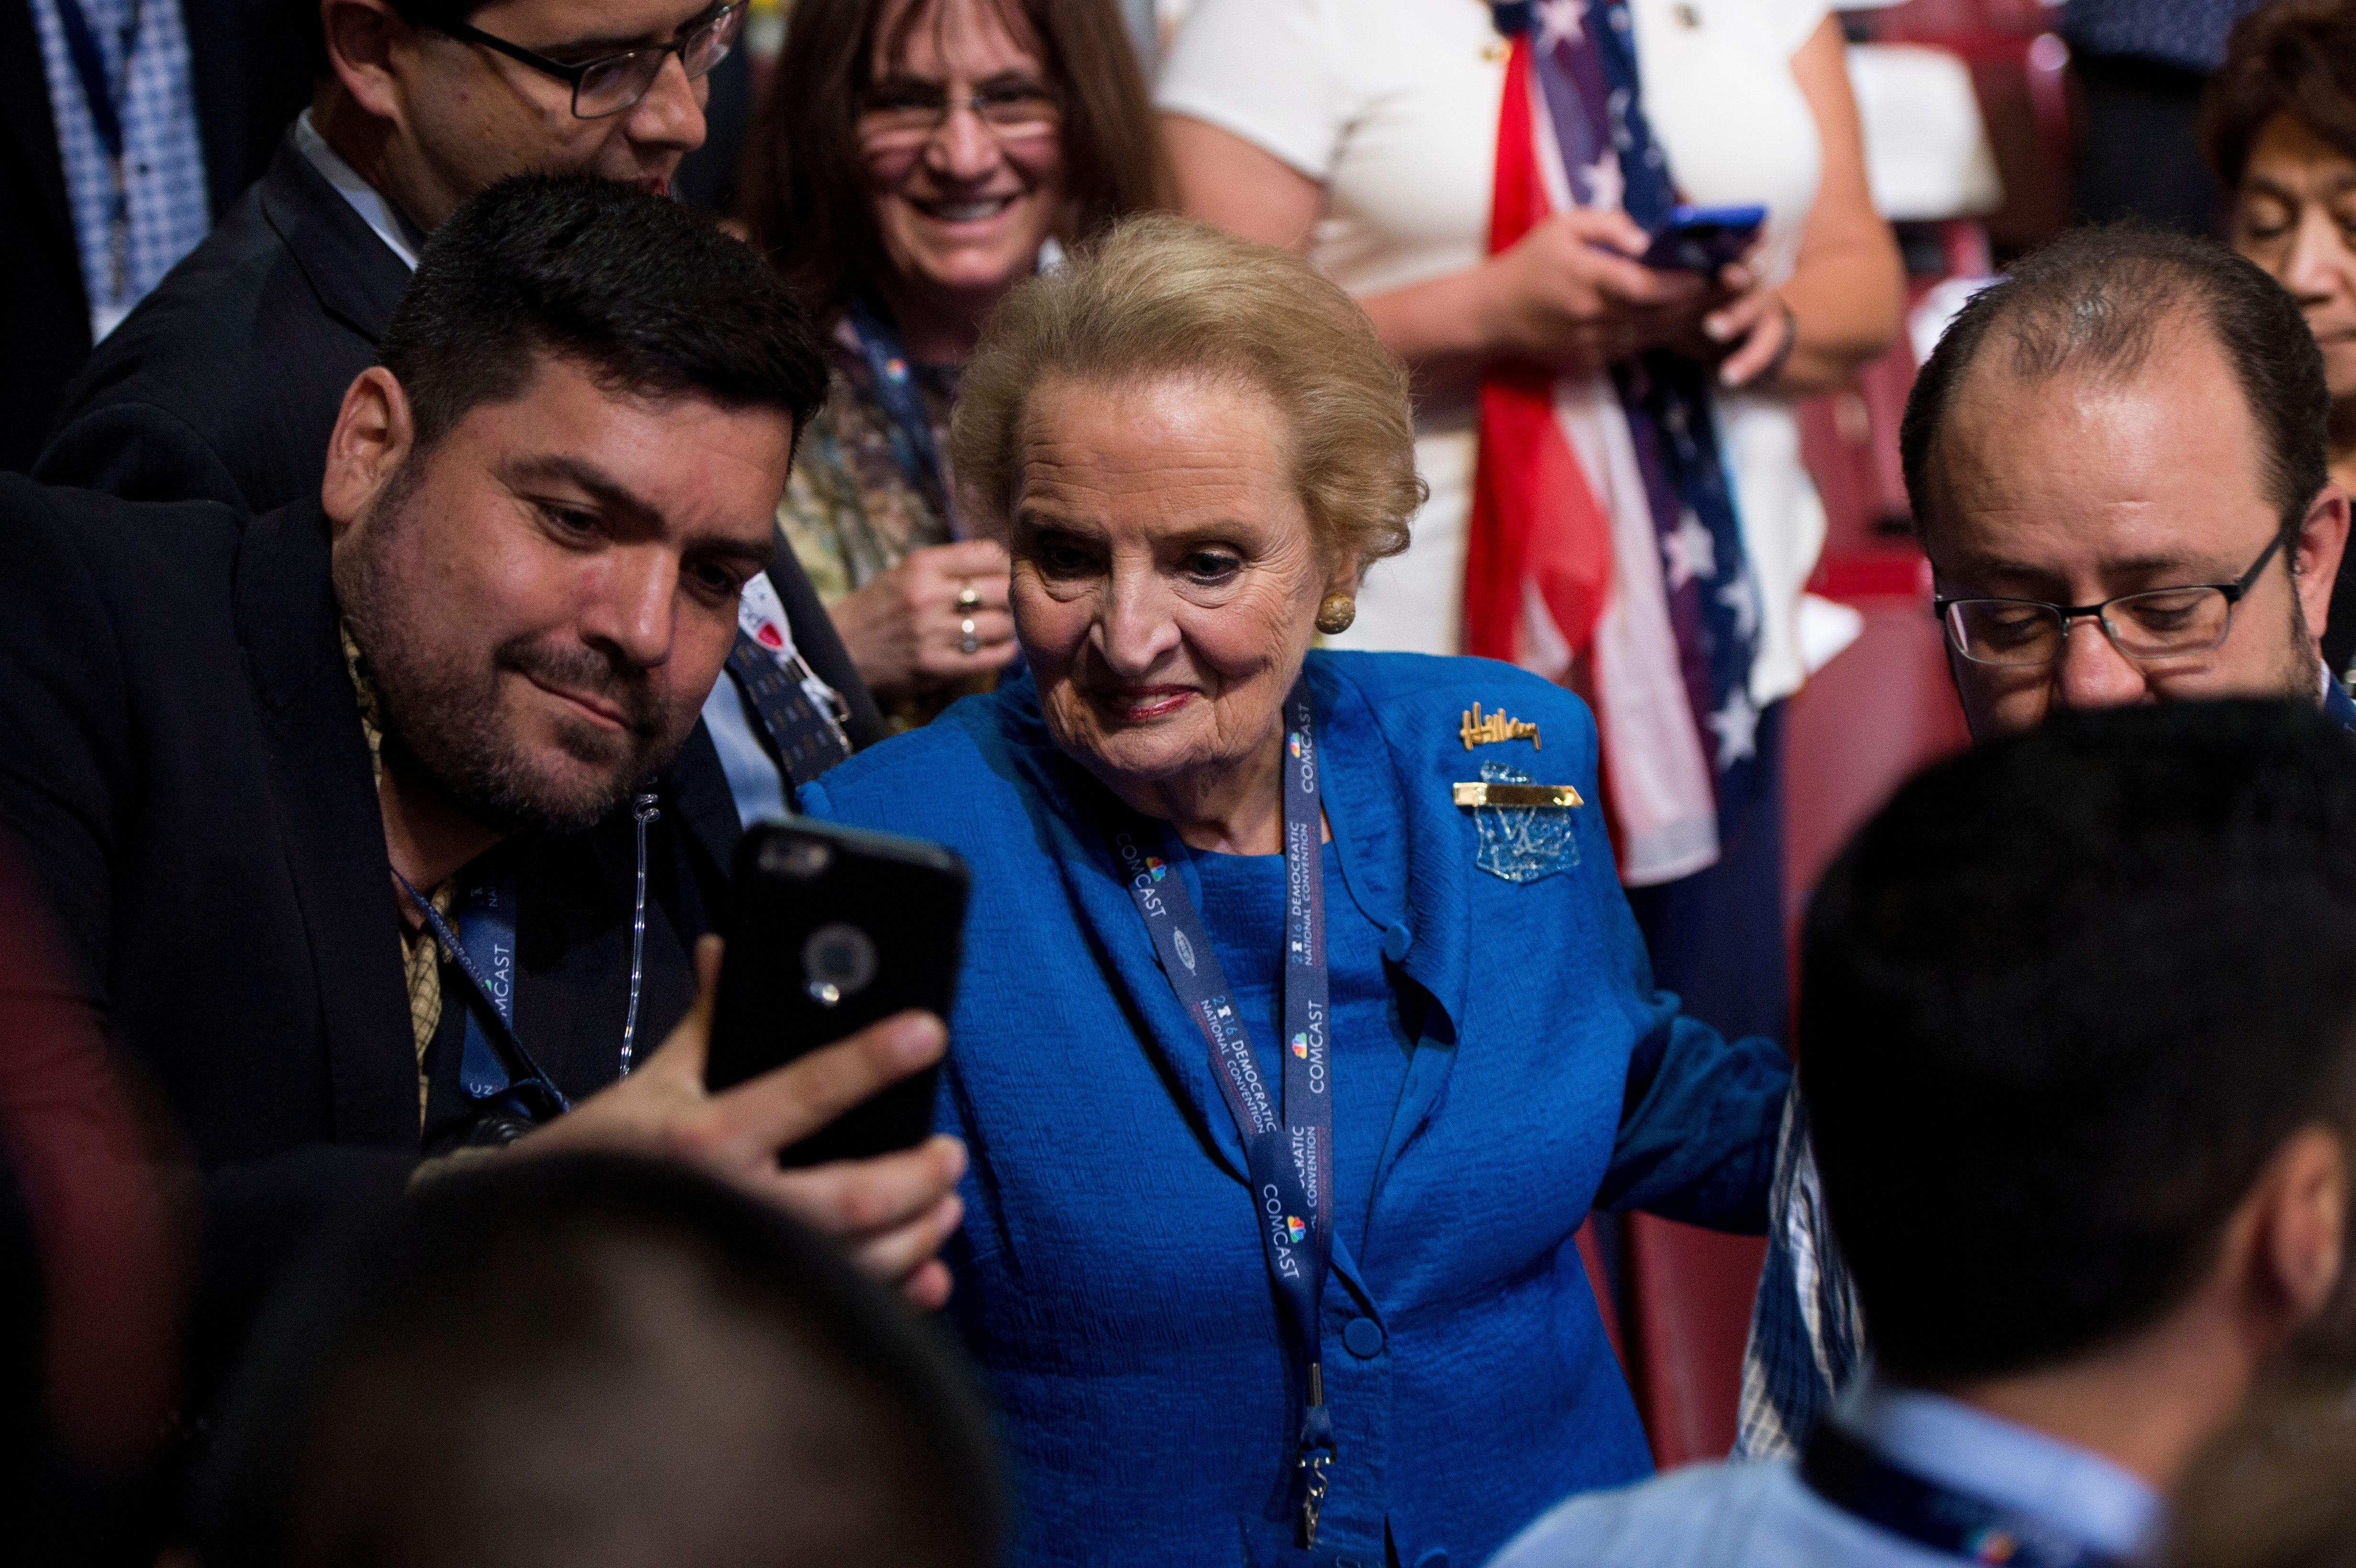 UNITED STATES - JULY 28: Former Secretary of State Madeleine Albright stops to pose for selfies with members of the Colorado delegation as she walks to the floor at the Democratic National Convention in Philadelphia on Thursday, July 28, 2016. Sarah became the first transgender person to address a national political convention. (Photo By Bill Clark/CQ Roll Call)